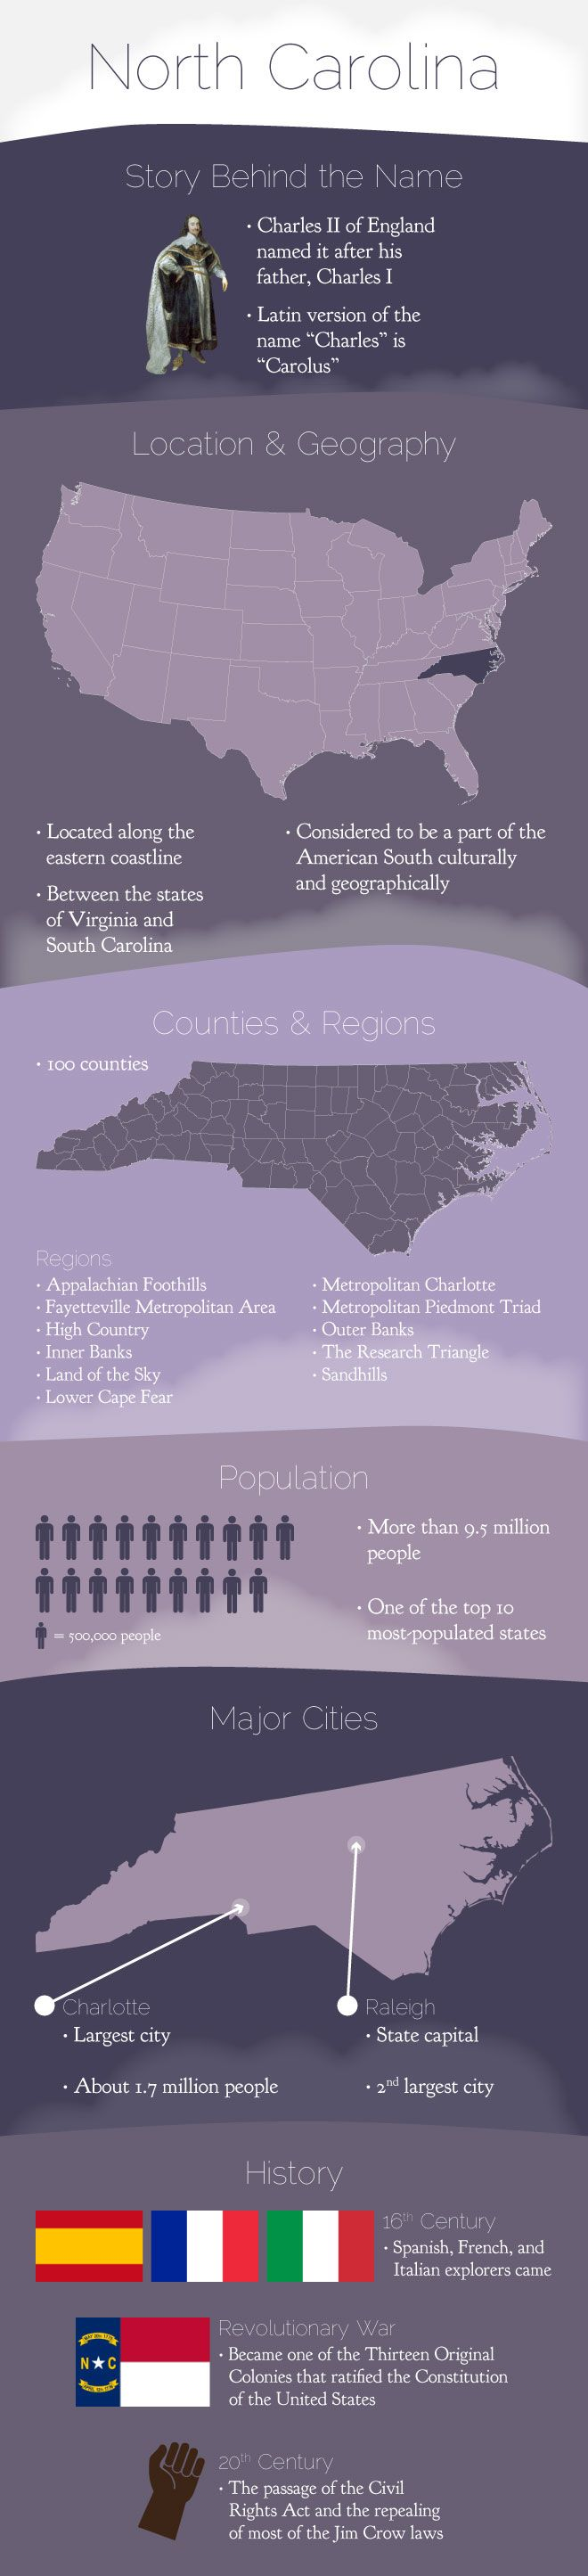 25 Best Ideas About North Carolina Map On Pinterest Map